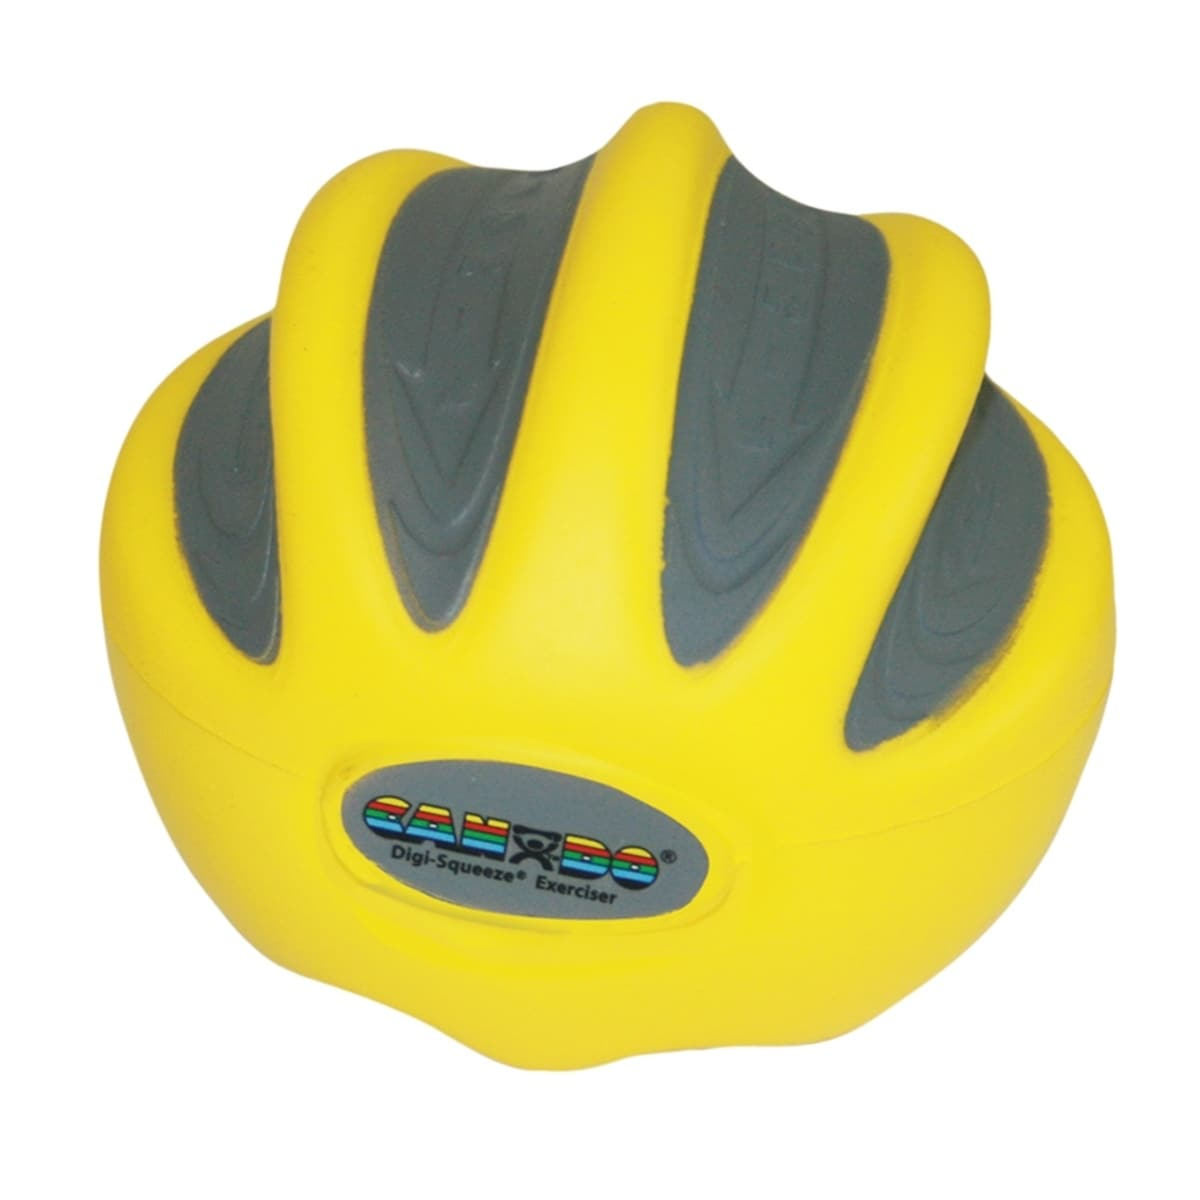 CanDo® Digi-Squeeze Hand/Finger Exerciser, Large (yellow ...